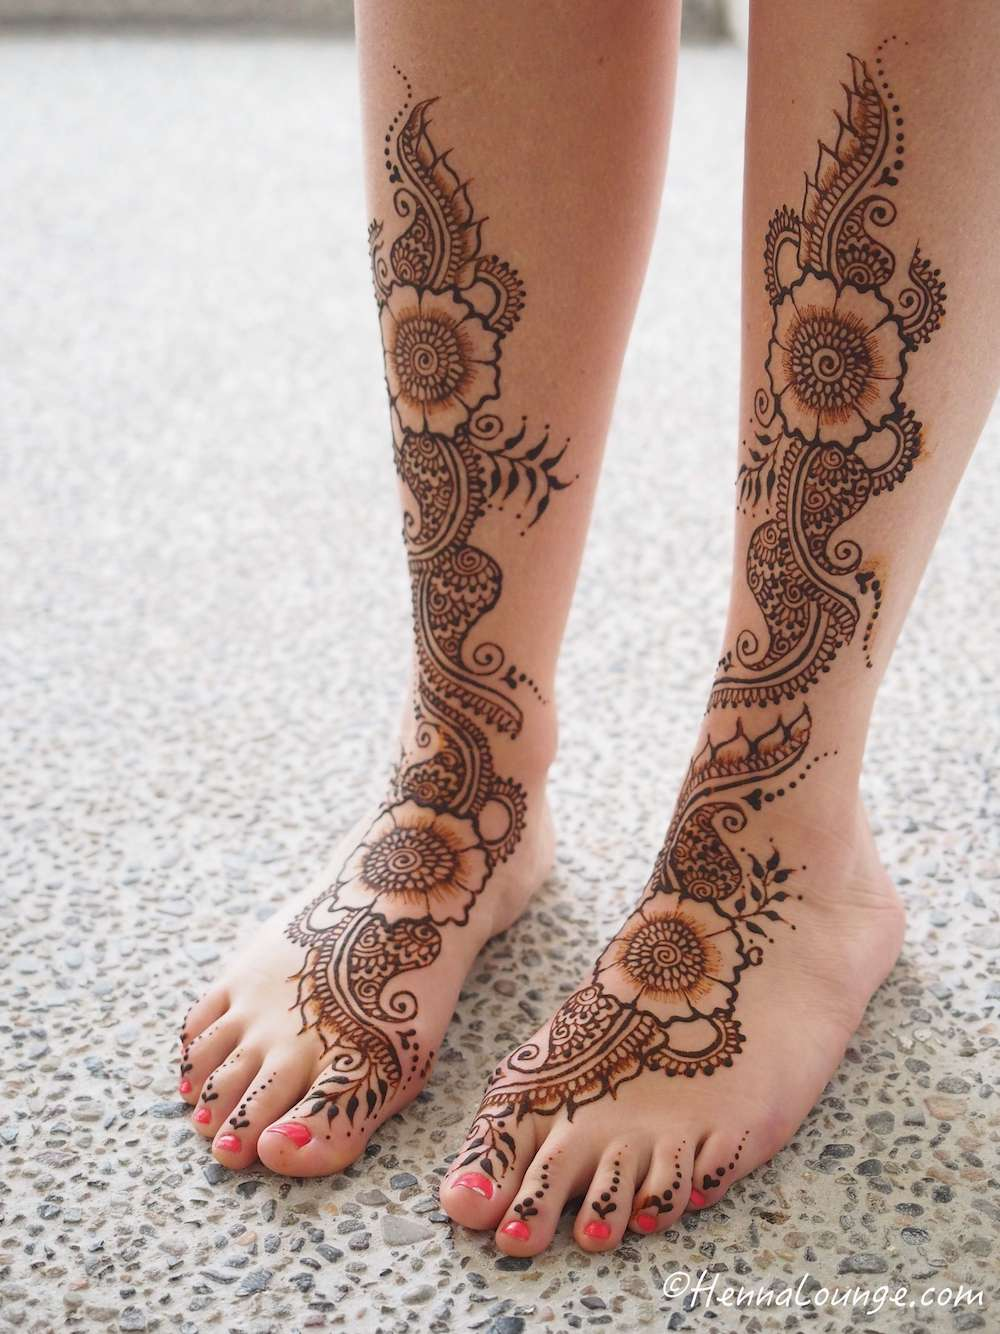 Her feet were my favorite, such a luxury to have beautifully decorated feet!